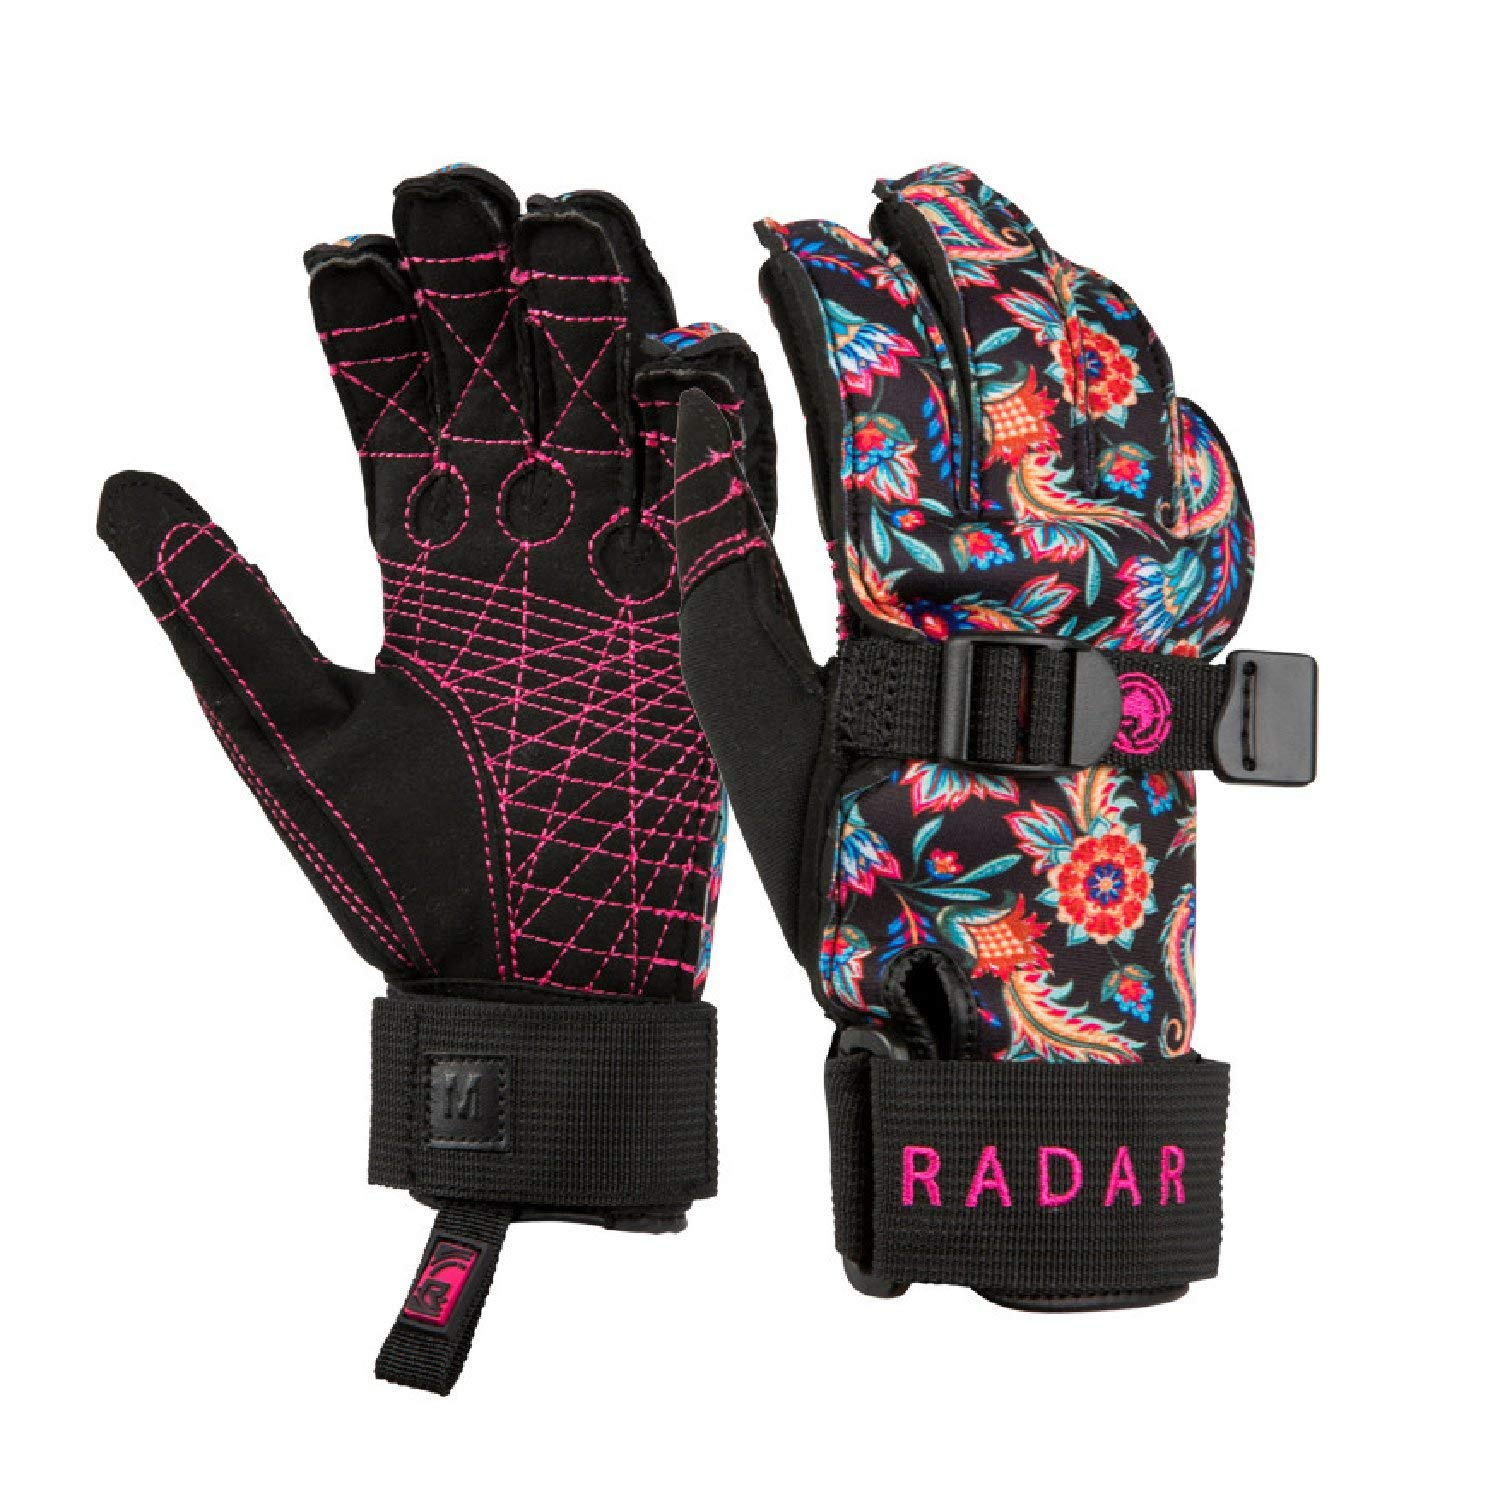 Radar 2019 Lyric Inside-Out Women's Waterski Gloves-Small by Radar